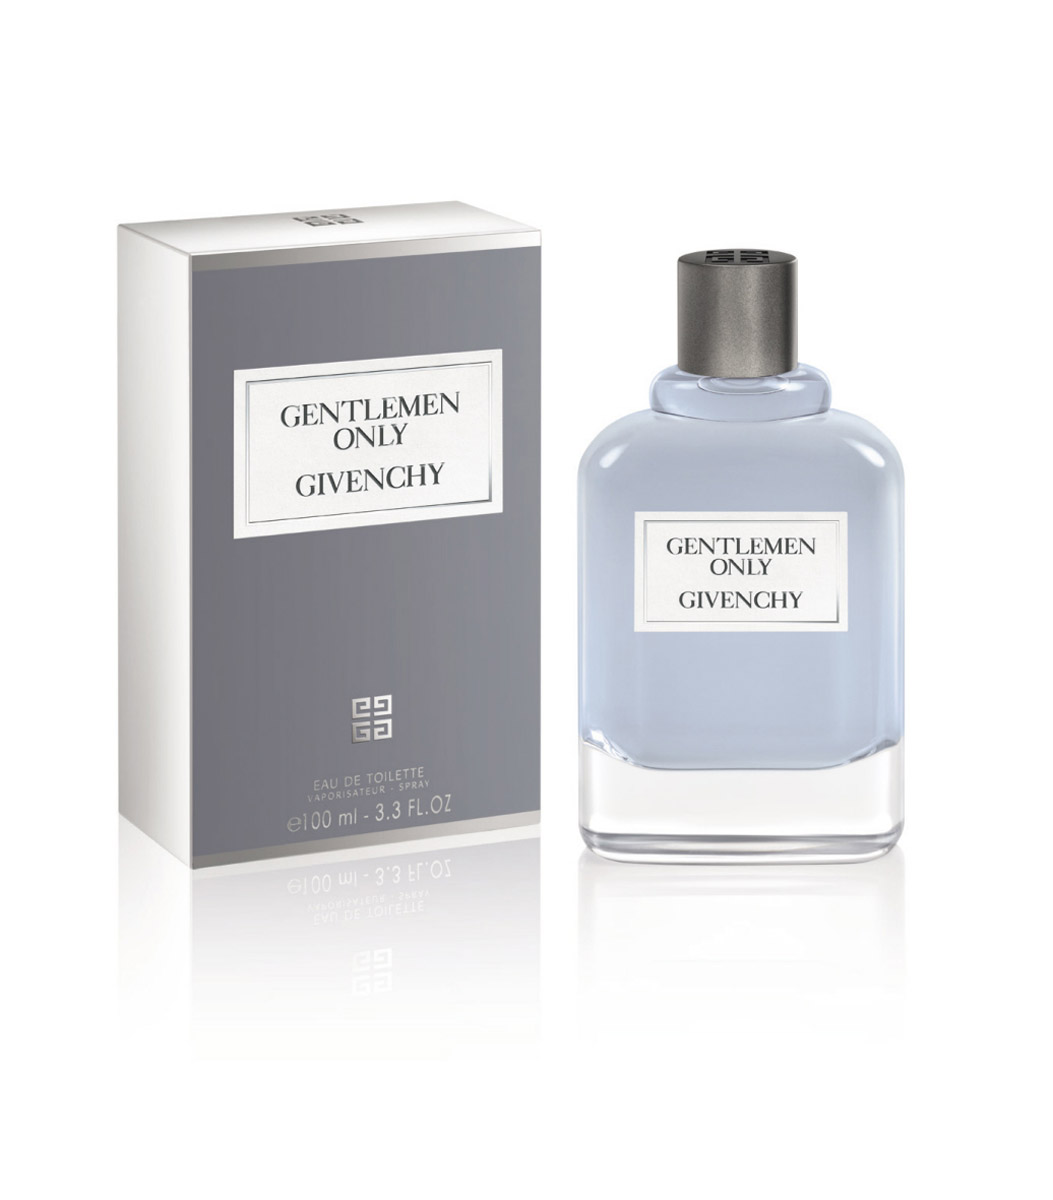 Туалетная вода Givenchy Givenchy Gentlemen Only 100ml